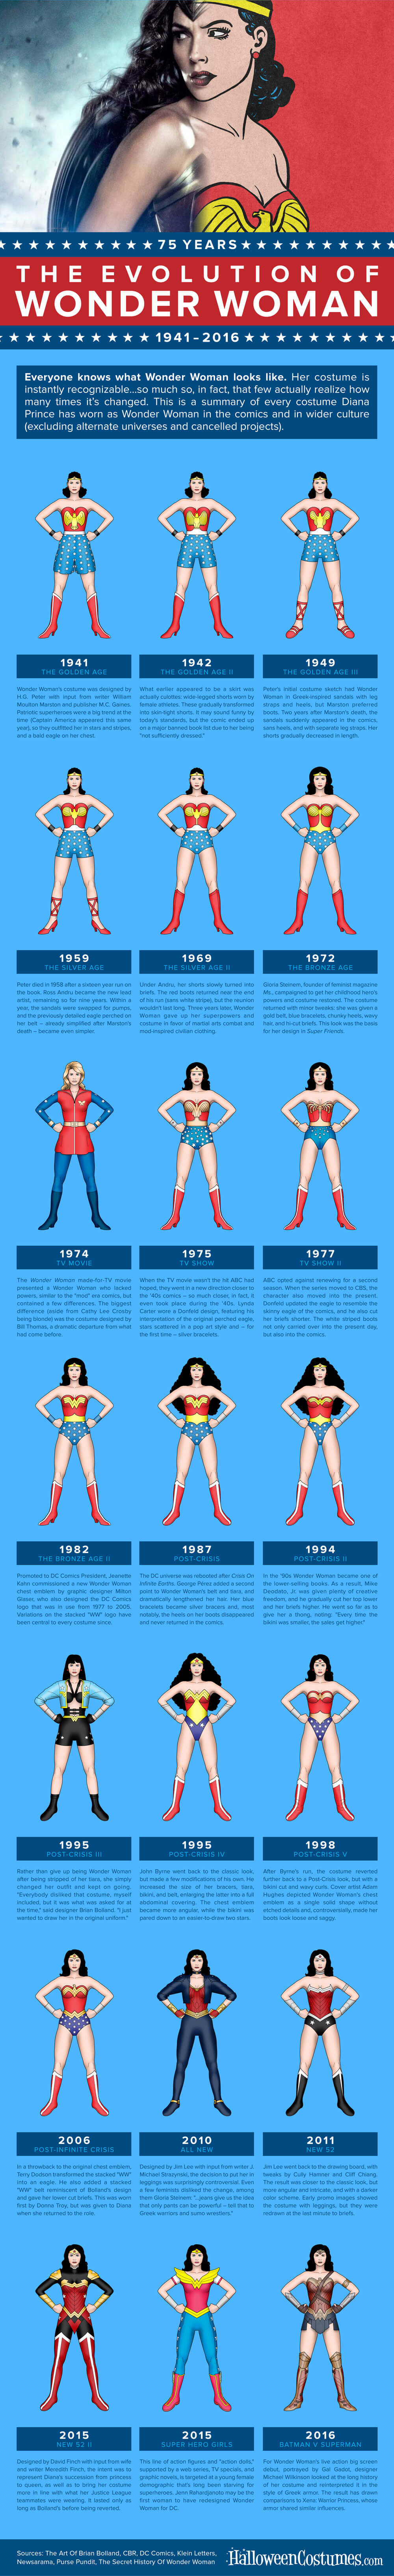 http://images.halloweencostumes.com/blog/928/Wonder-Woman-Infographic.jpg